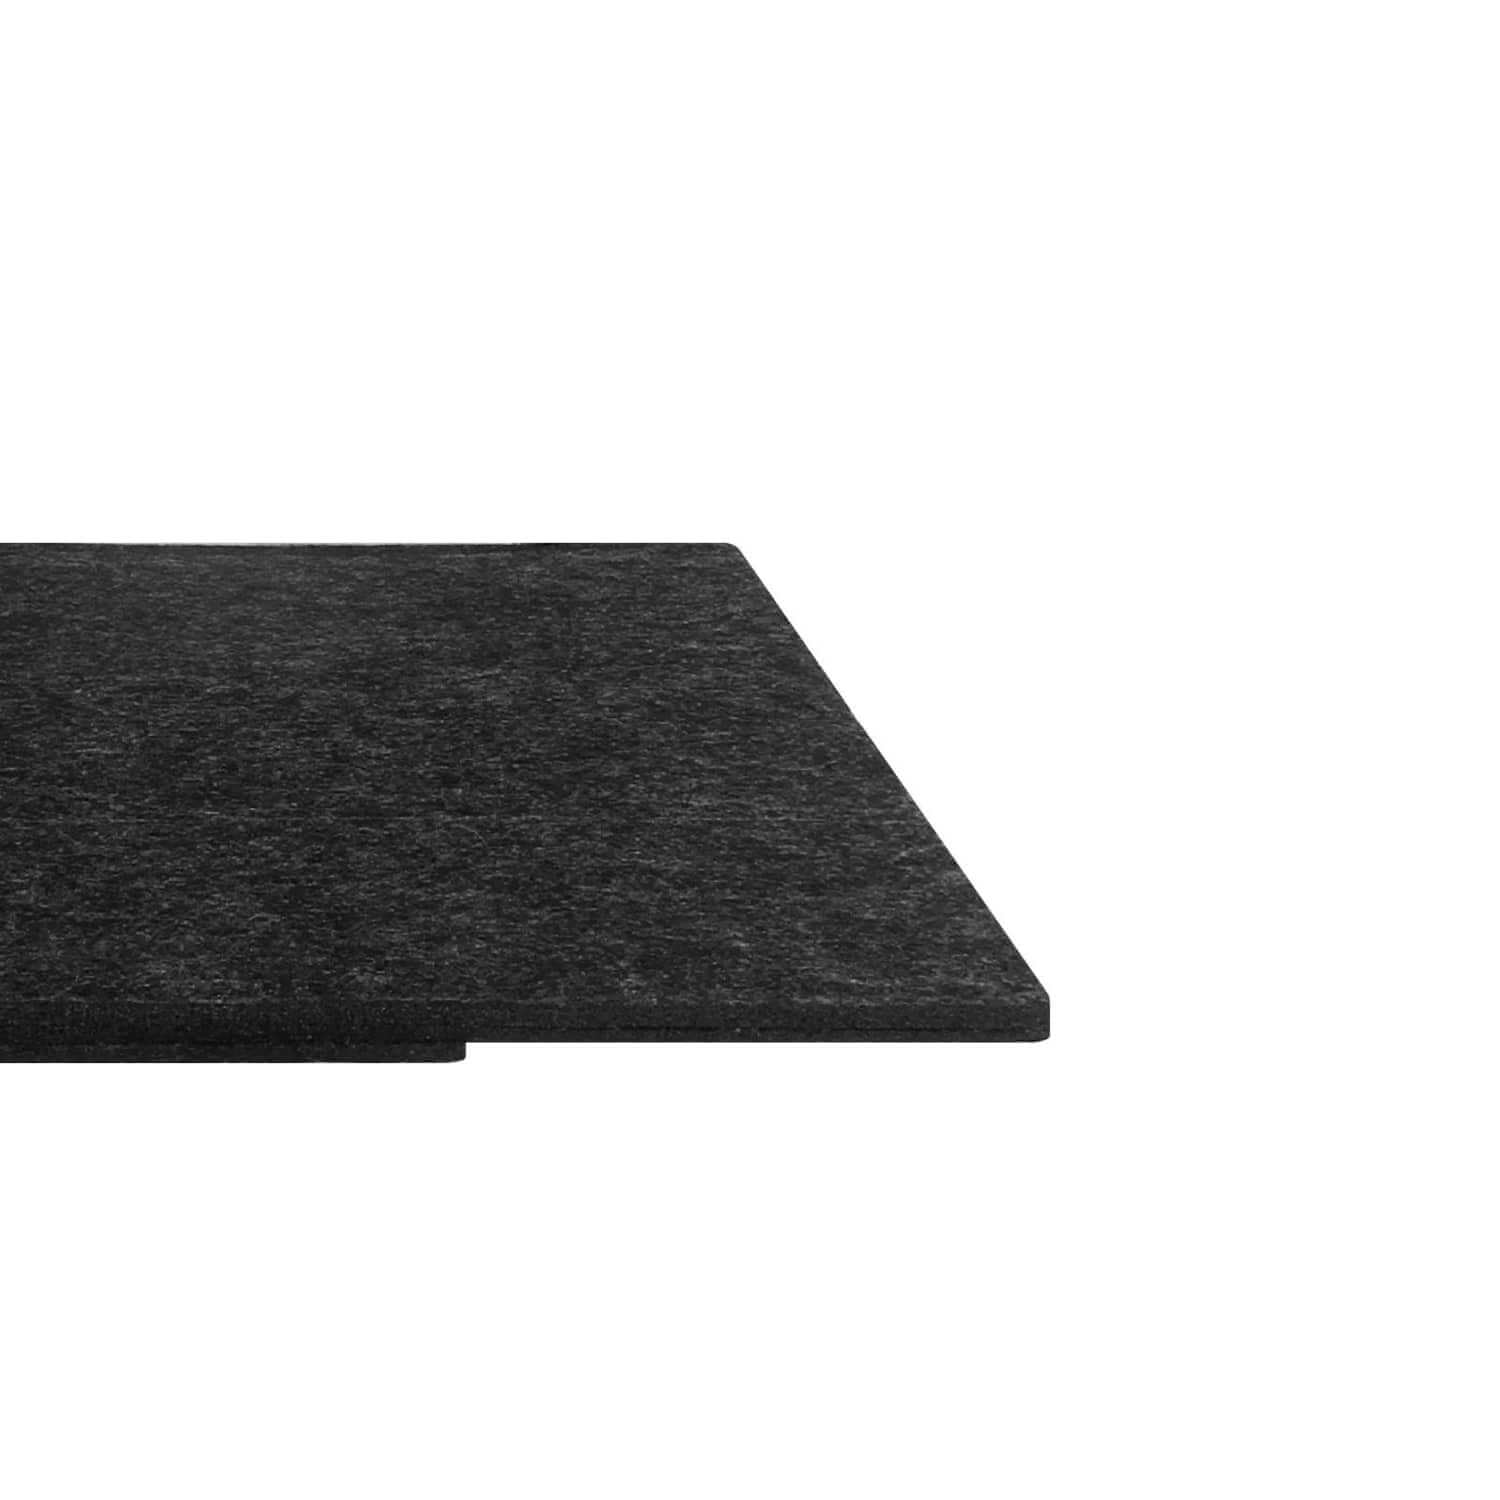 Felt case tablet 9.7 - business darkgrey 4